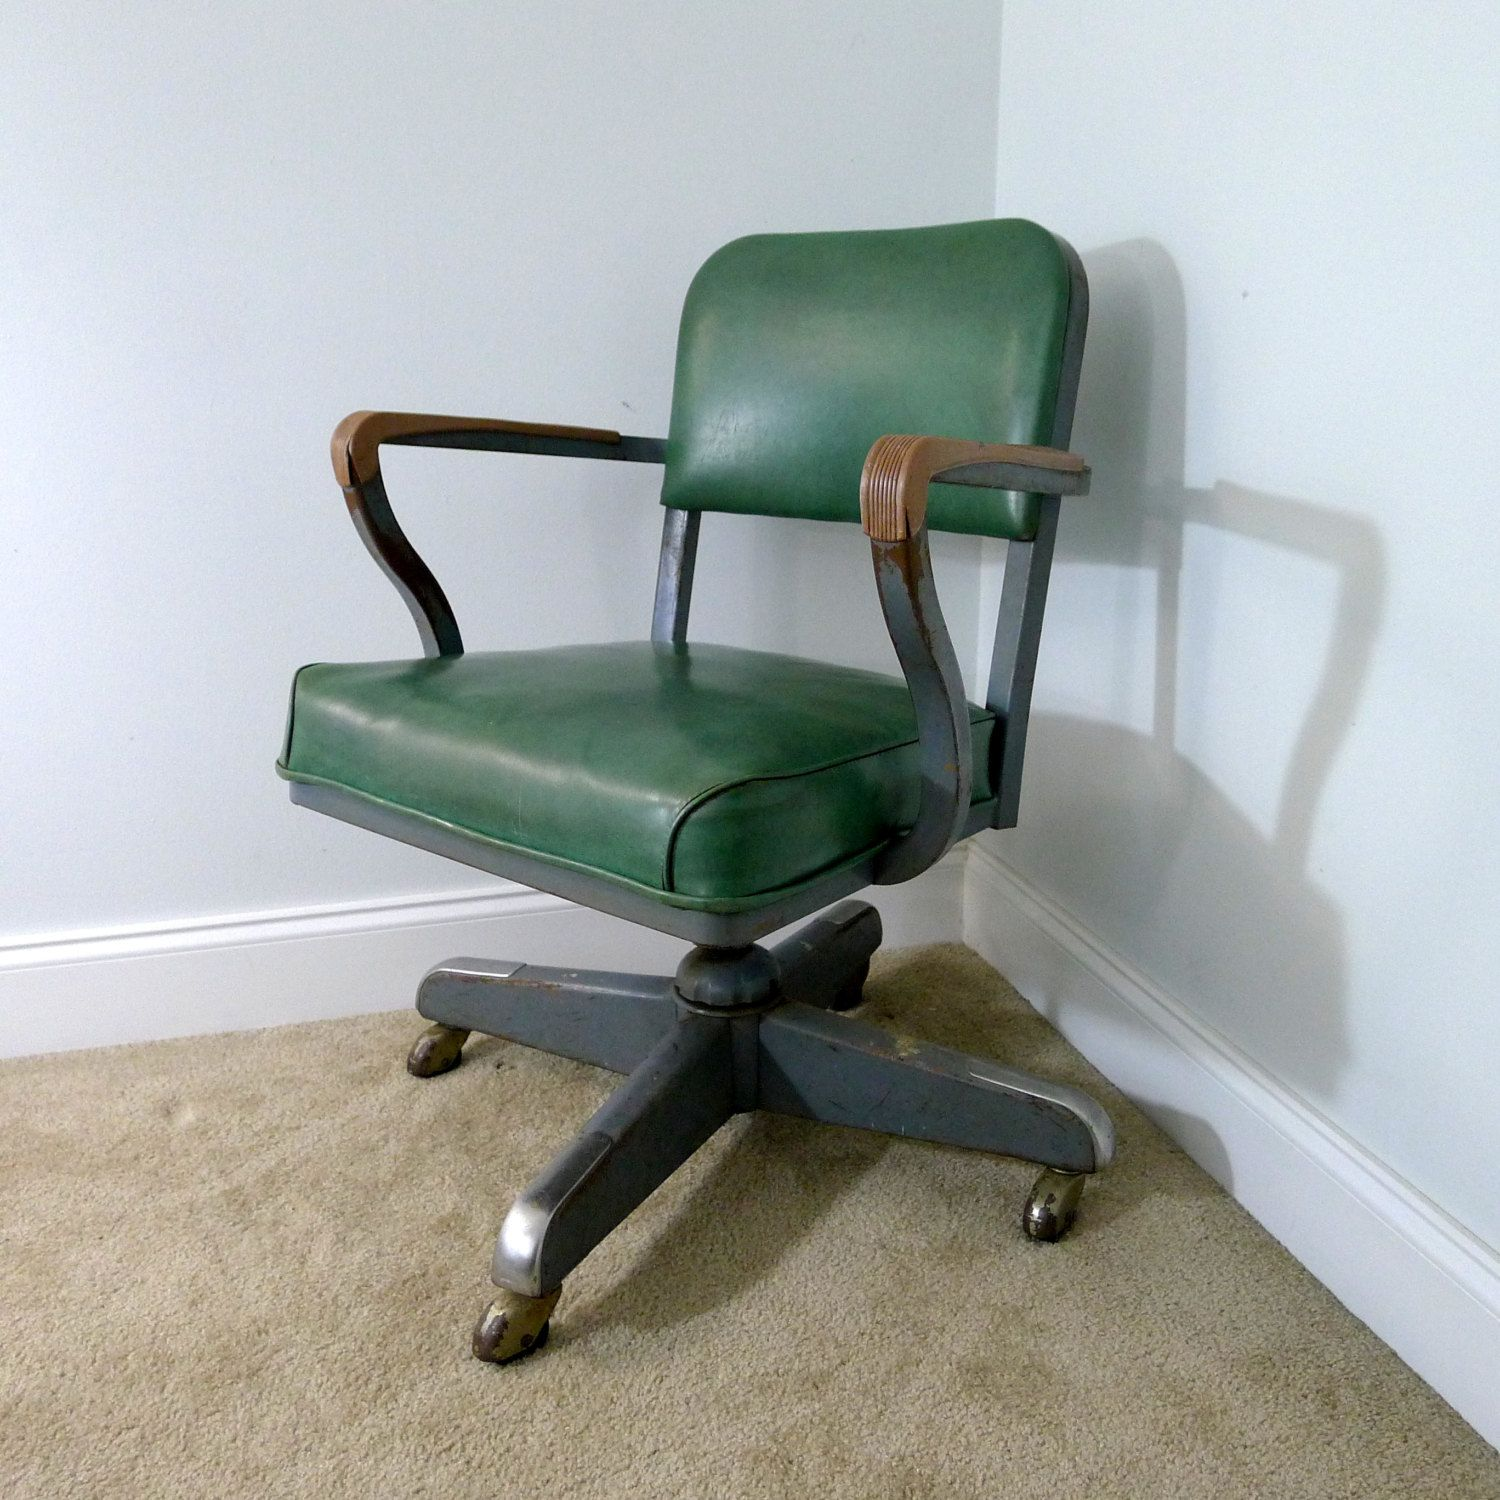 Tanker Swivel Office Chair Vintage Office Chair Chair Office Chair